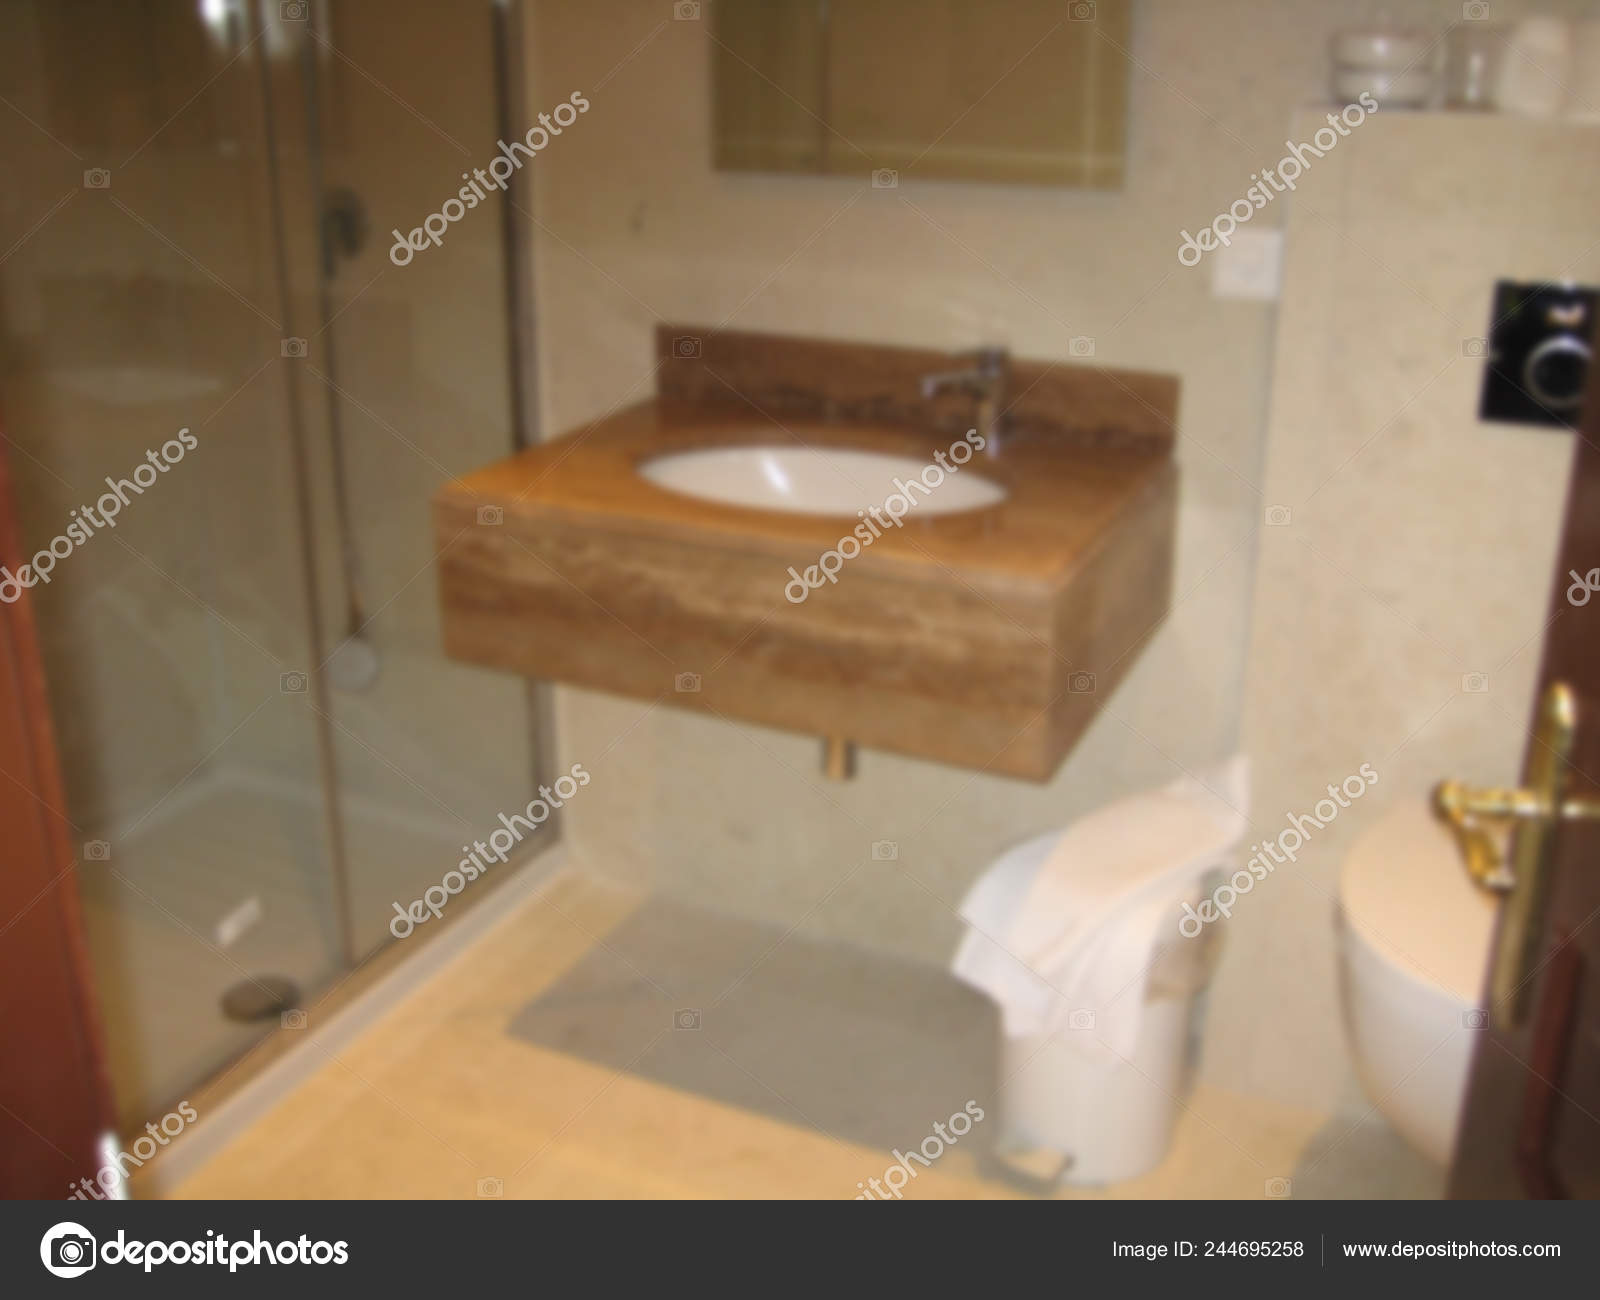 Blur Interior Design Bathroom Closeup Marble Sink Shower Mirror Accessories Stock Photo C Archiviz 244695258